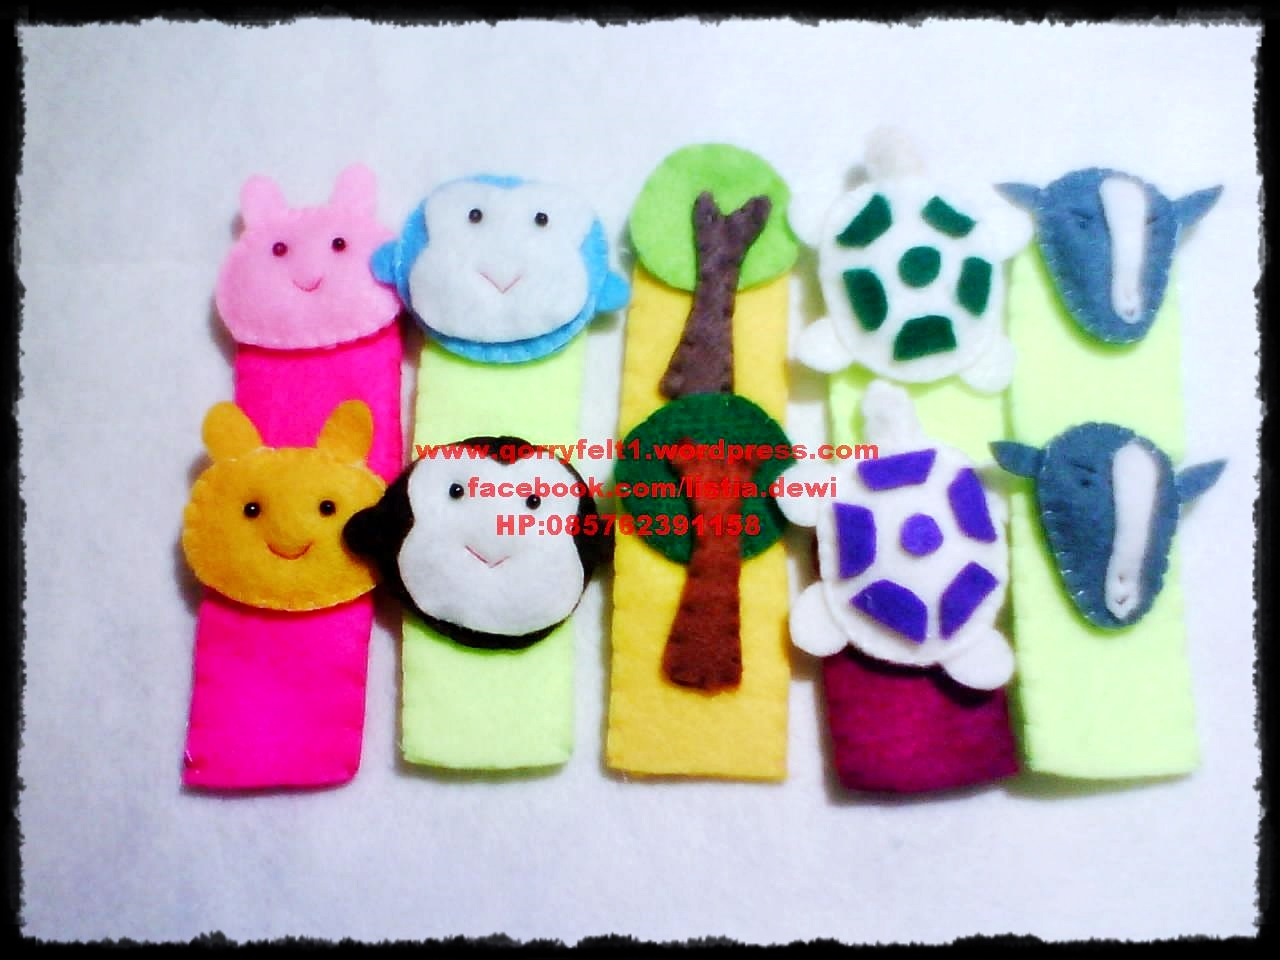 Boneka Jari Mainan Edukasi Qorry Felt N Craft